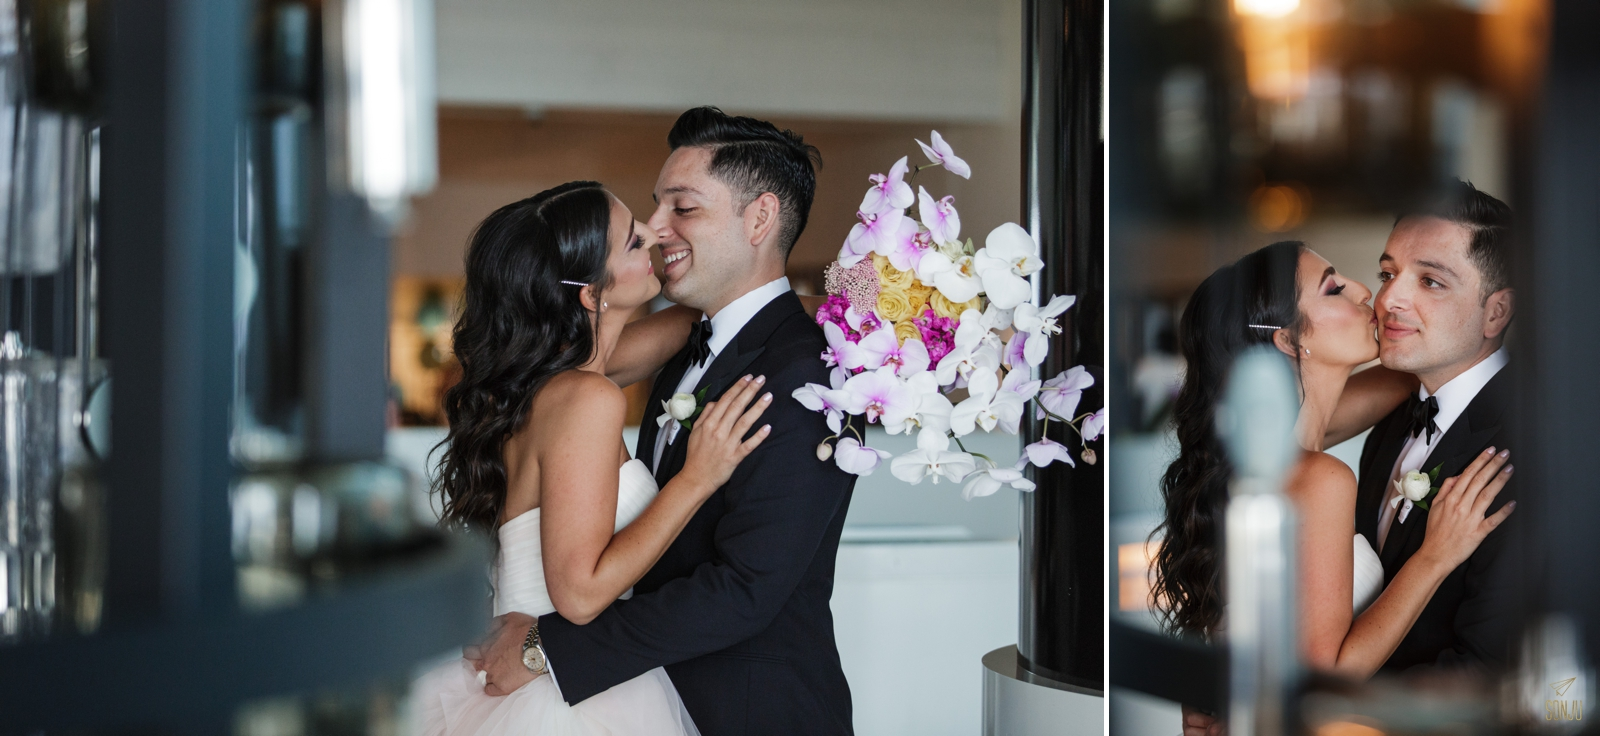 Wedding-at-the-W-Fort-Lauderdale